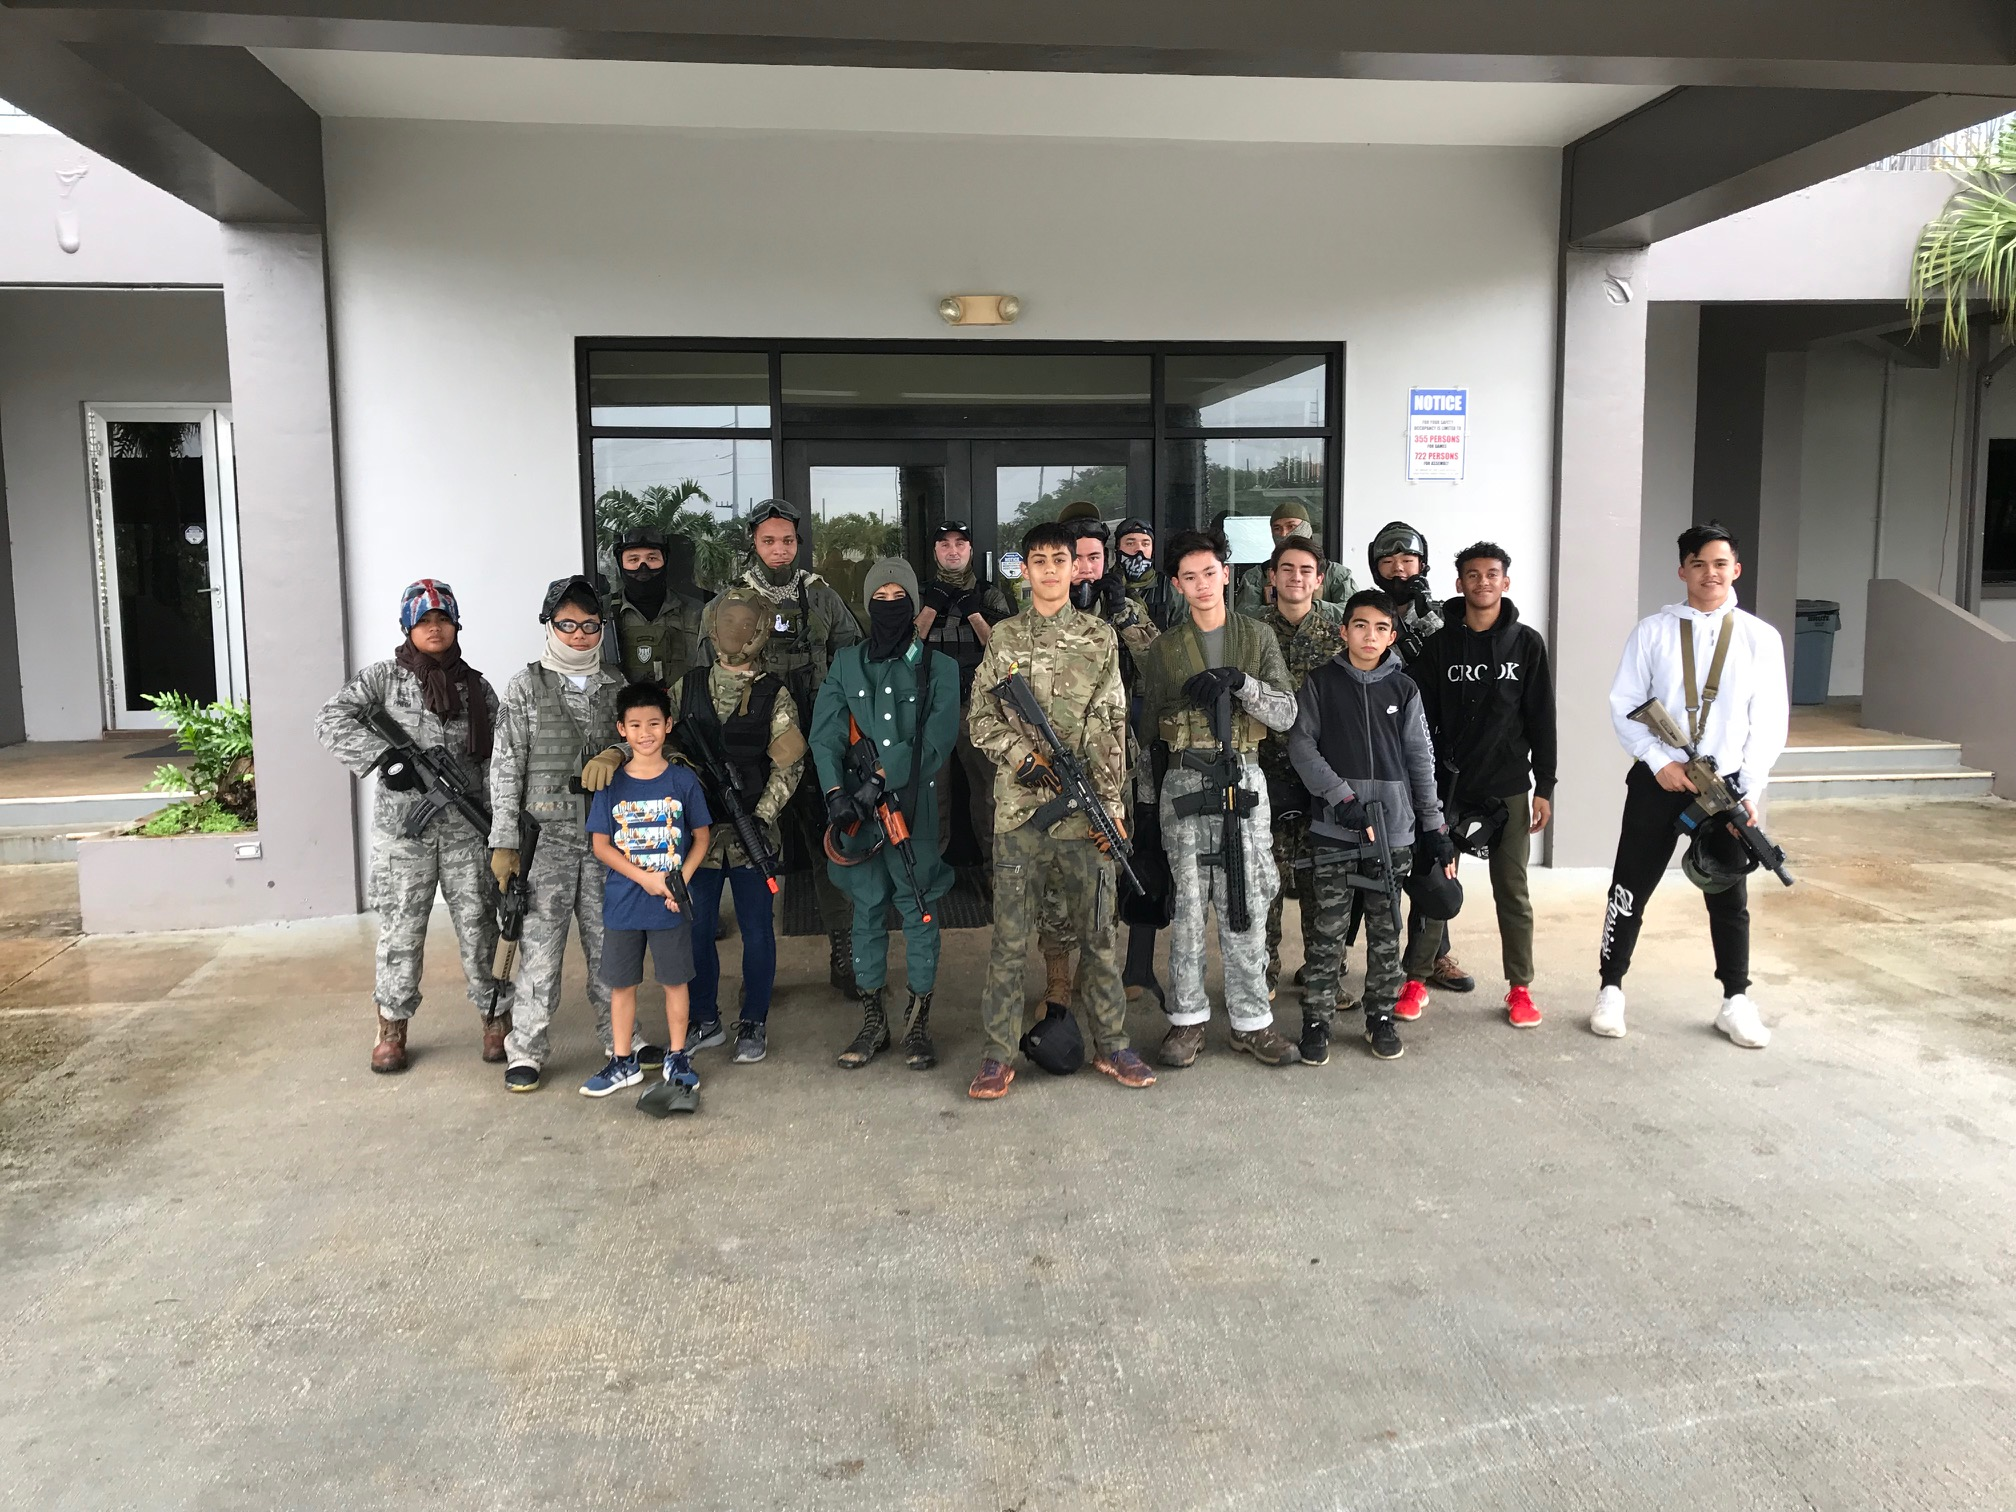 Airsoft Club - Airsoft game on the 28th of Dec. 2018